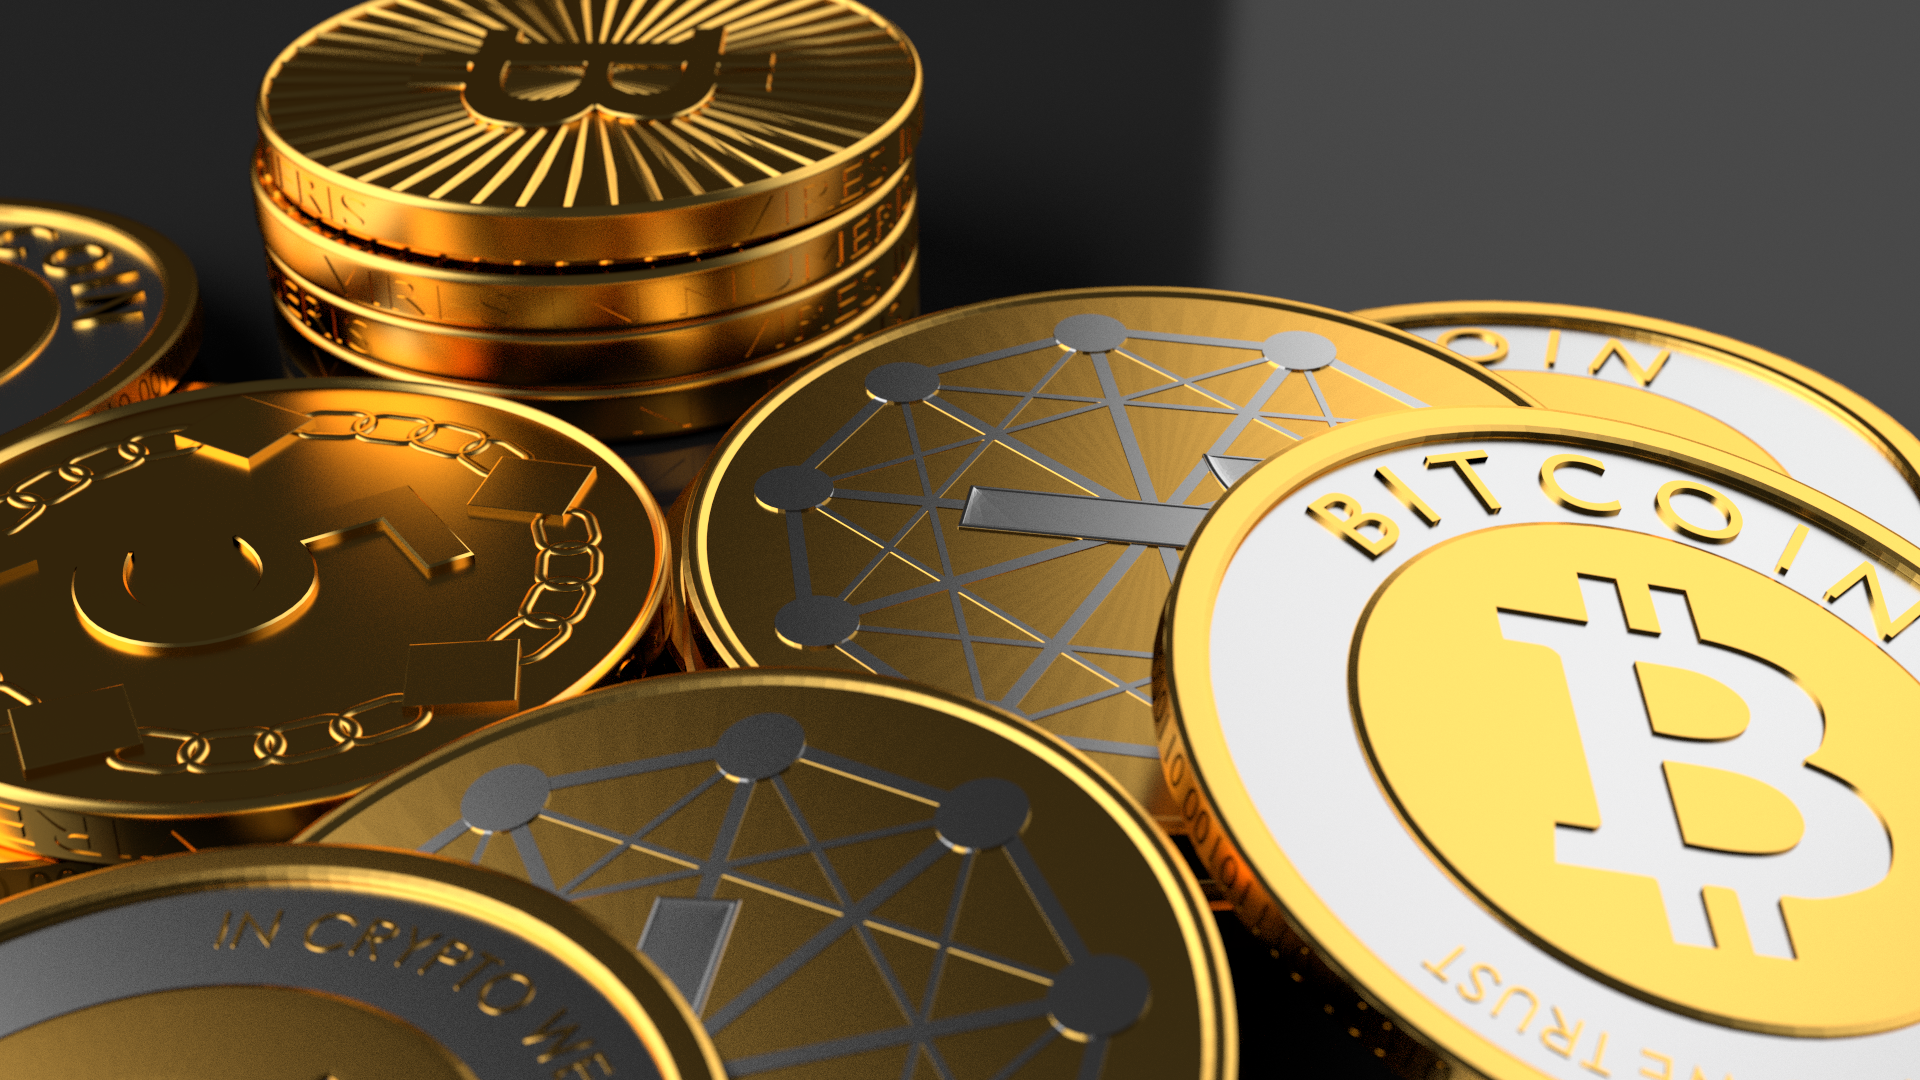 Bitcoin Wallpapers and Background Images   stmednet 1920x1080